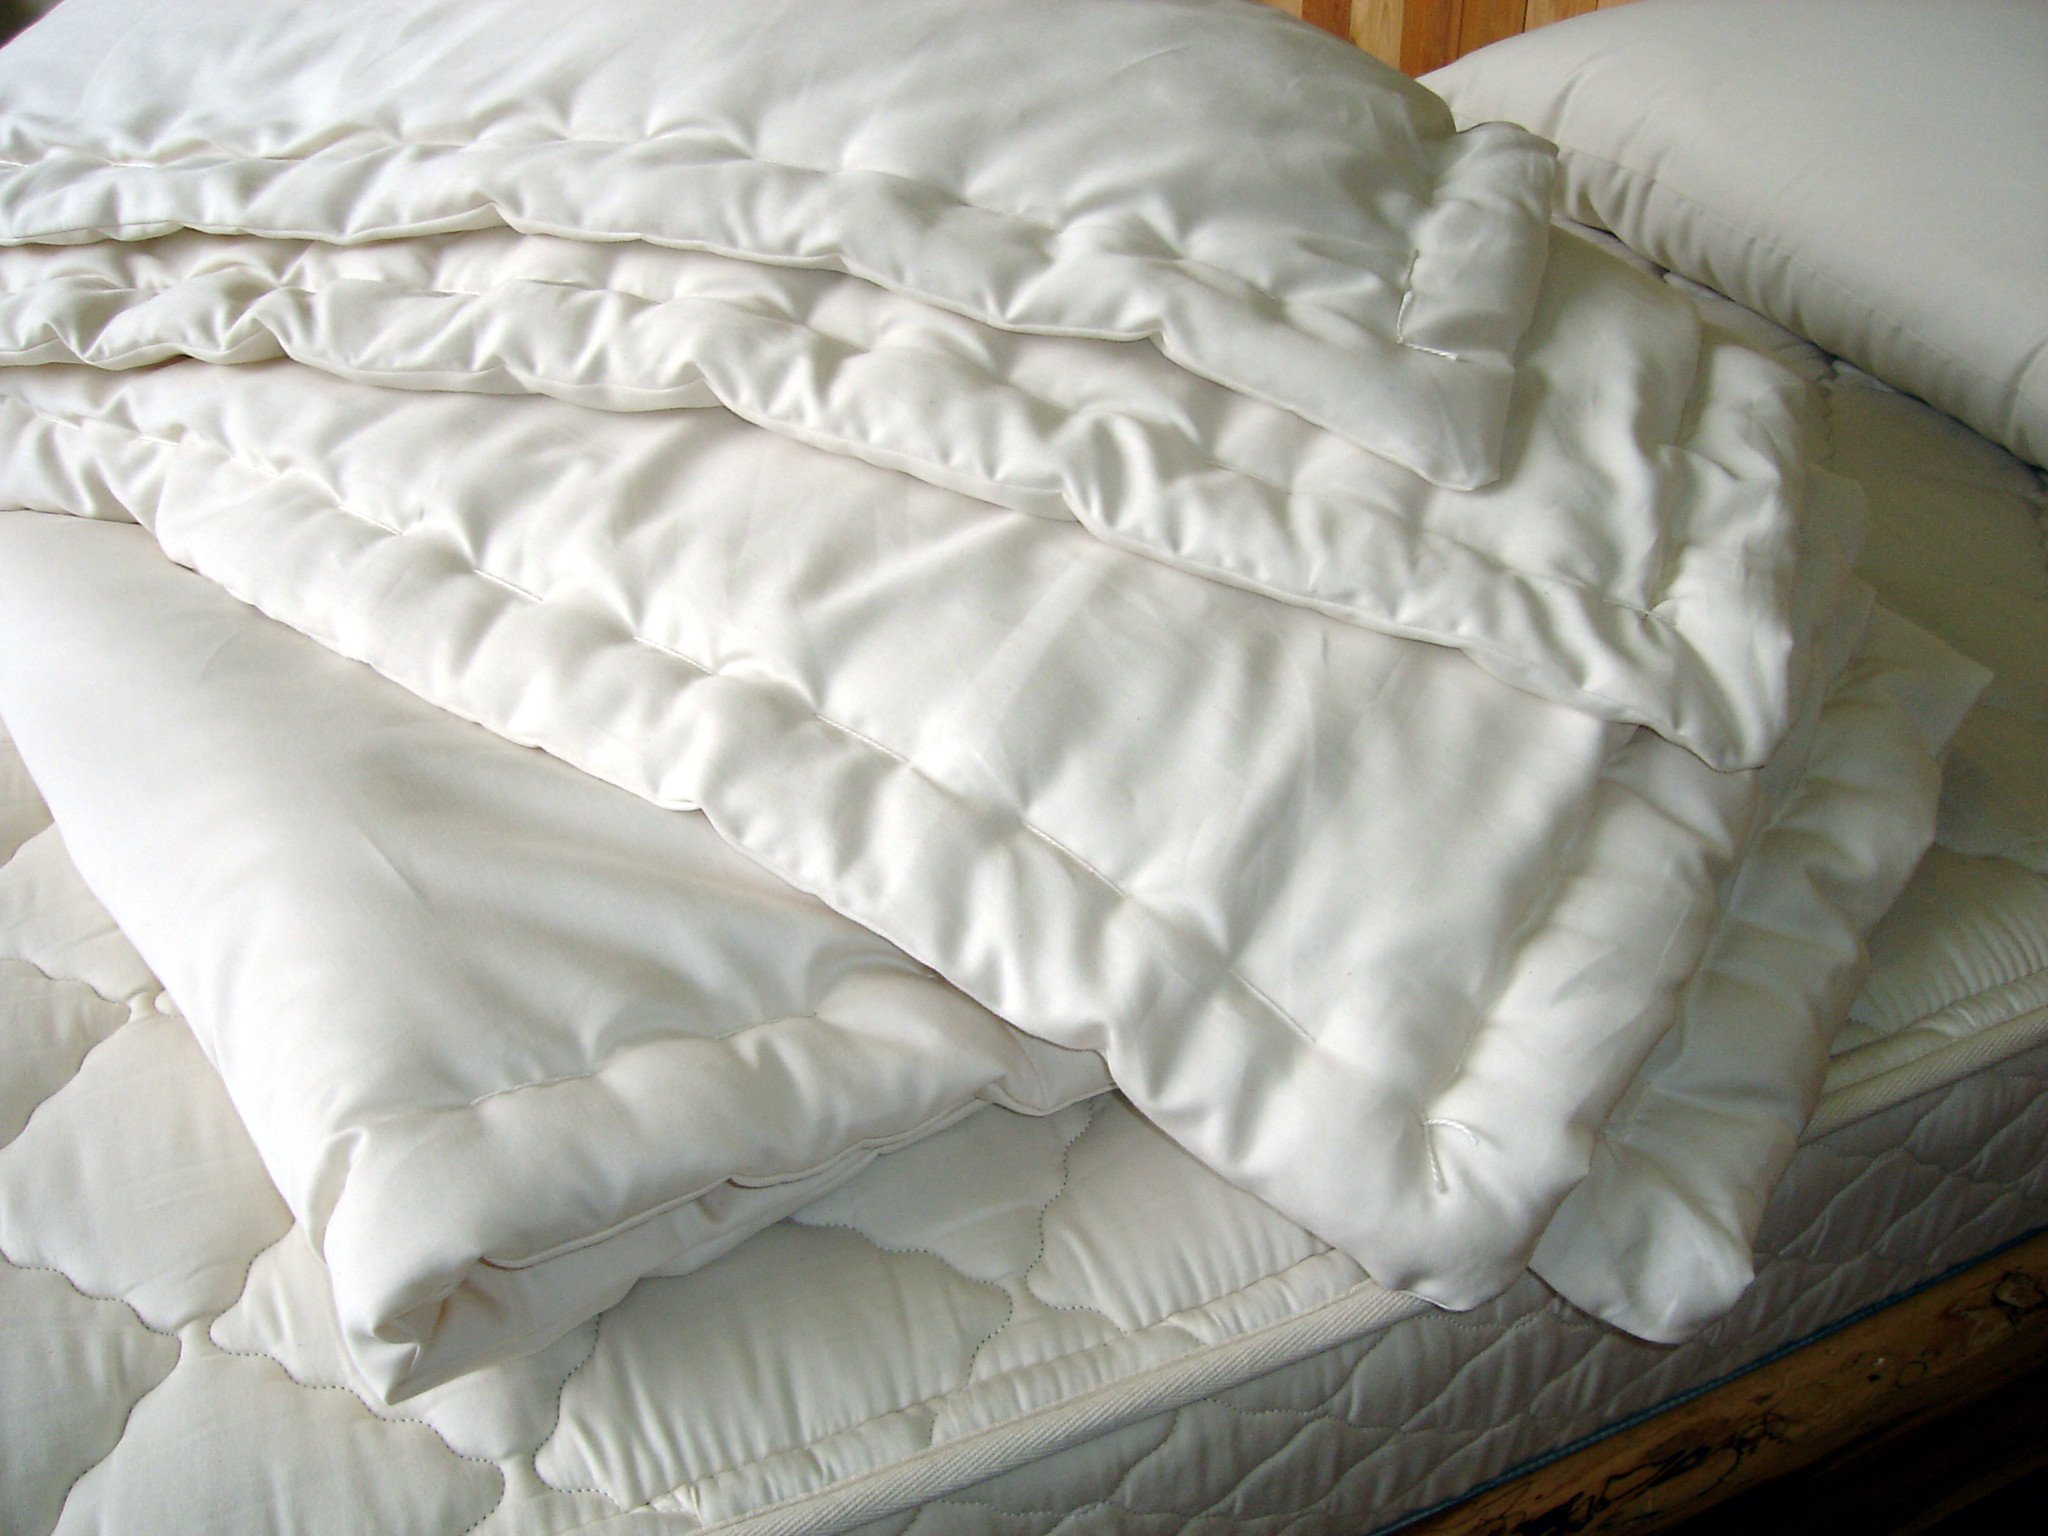 Holy Lamb Organics Cool Comfort Wool Comforter - Full/Queen by Holy Lamb Organics